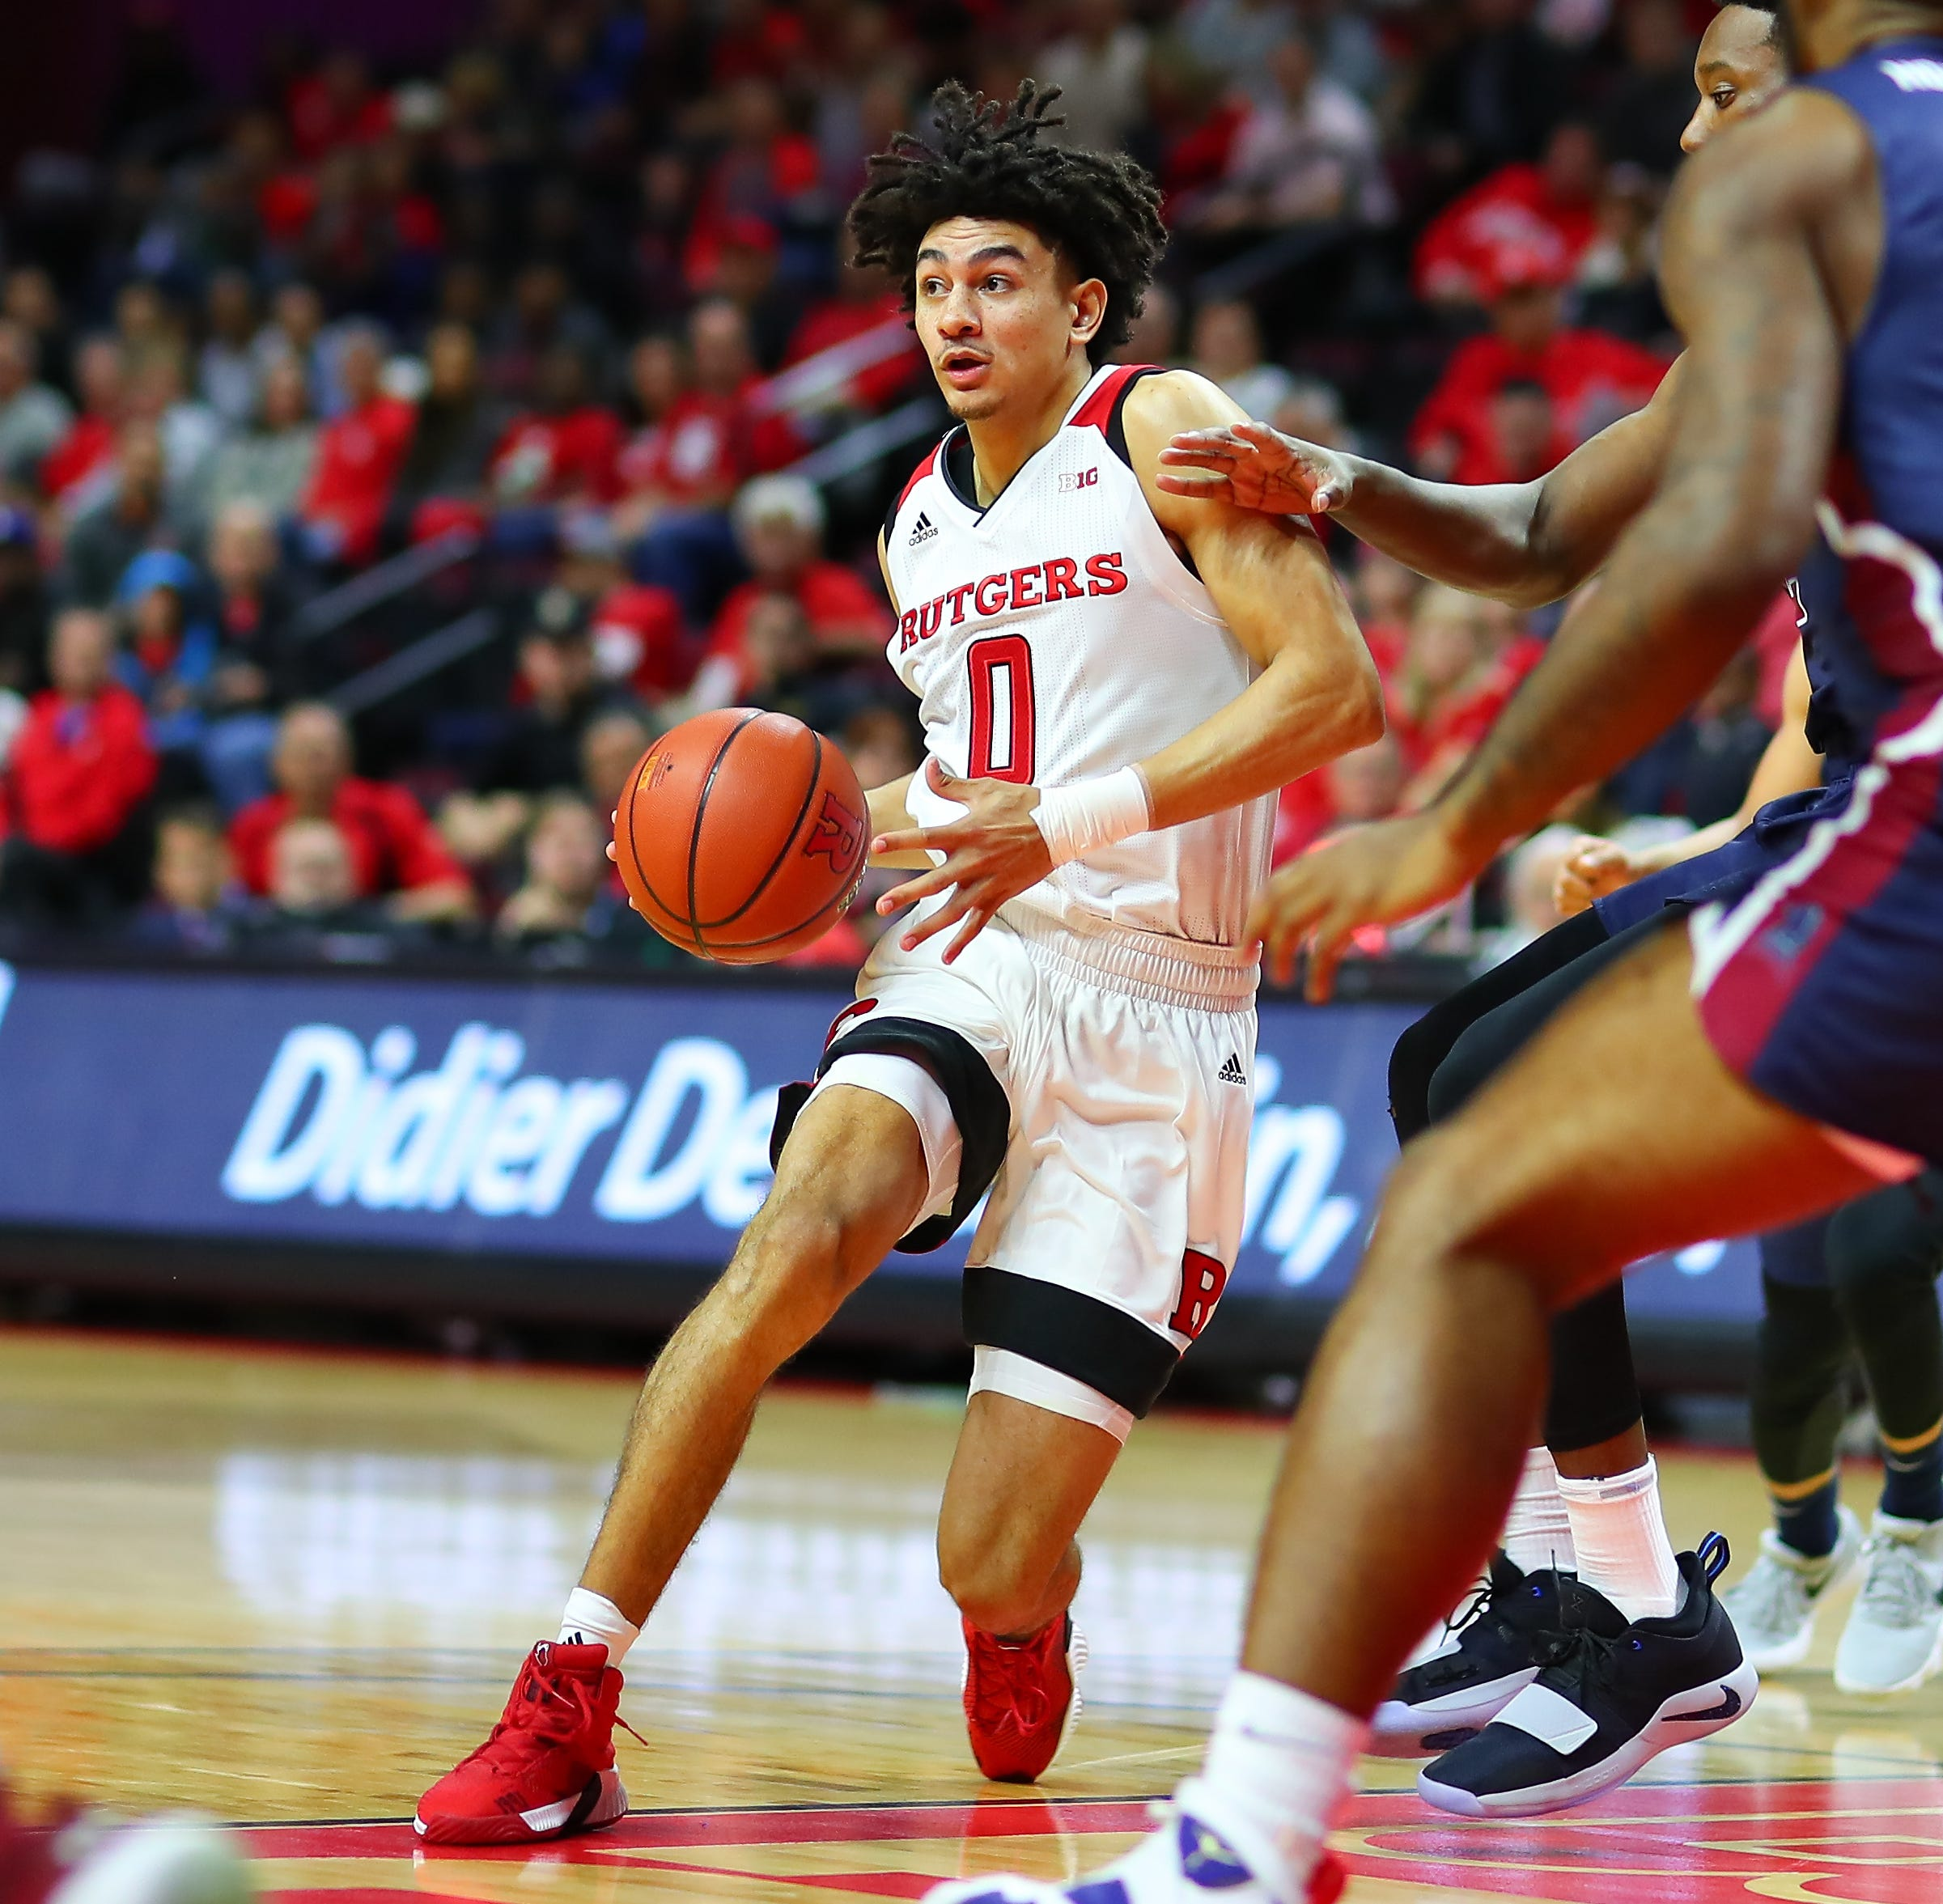 Rutgers hoops: Geo Baker's turn at point guard begins in rout of Fairleigh Dickinson